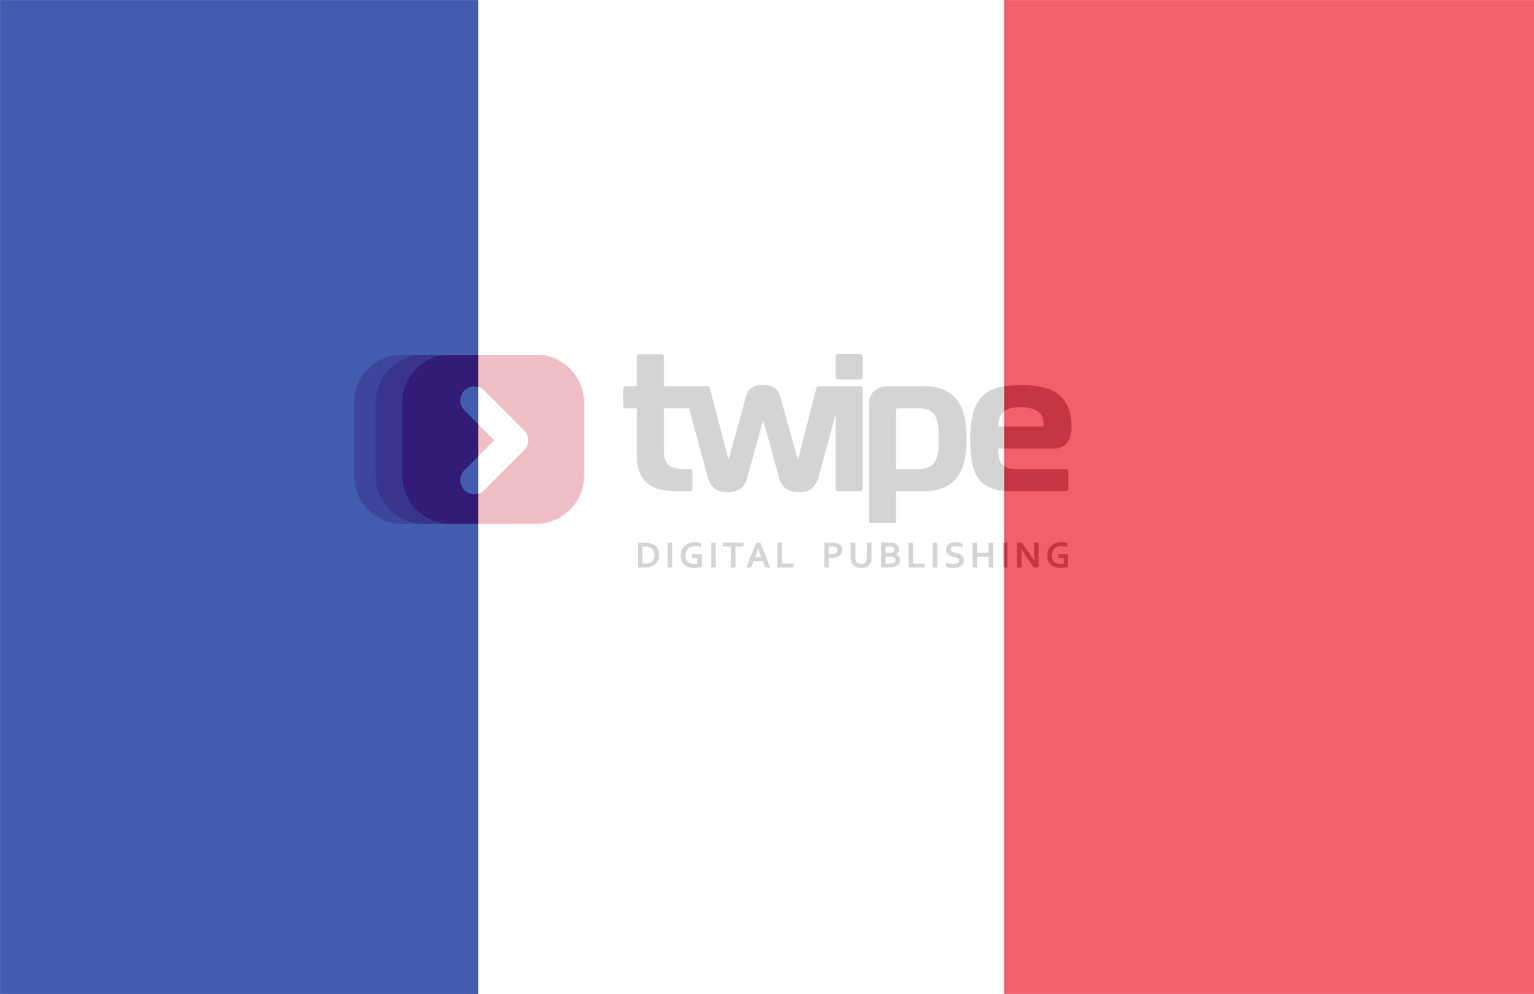 Pray for Paris - Twipe logo 2